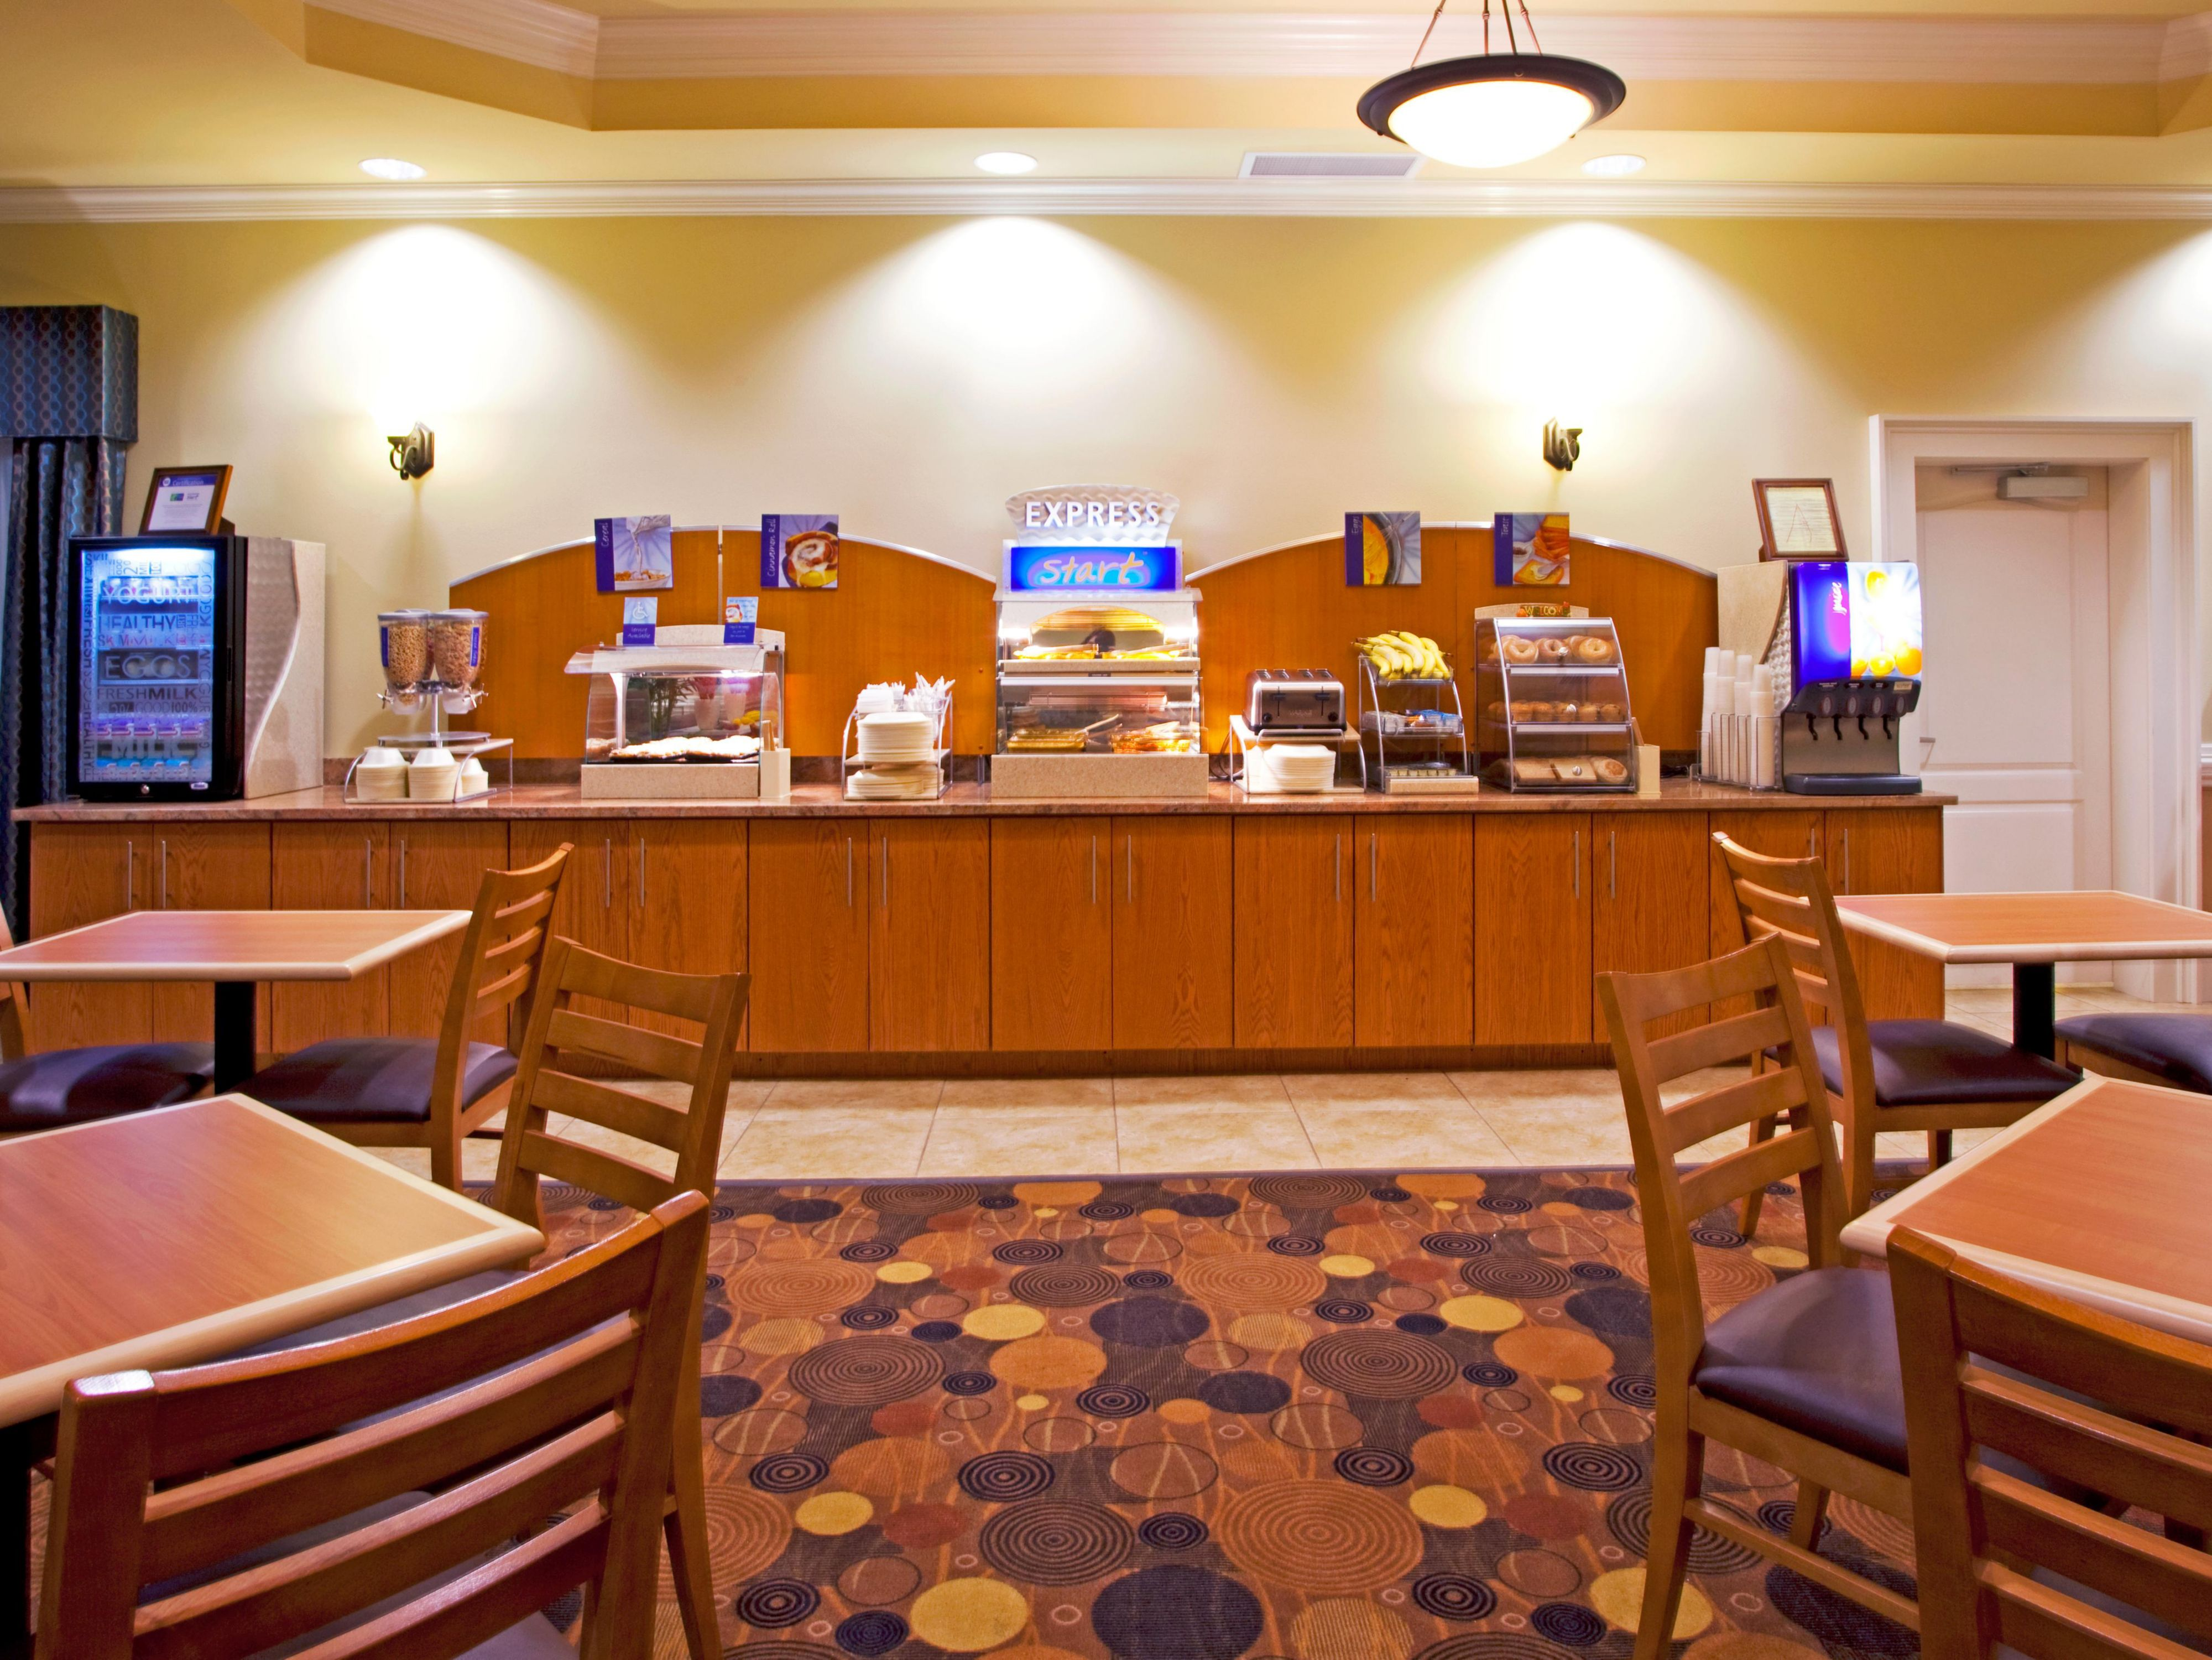 Holiday Inn Express and Suites of Valdosta, Georgia Breakfast Bar